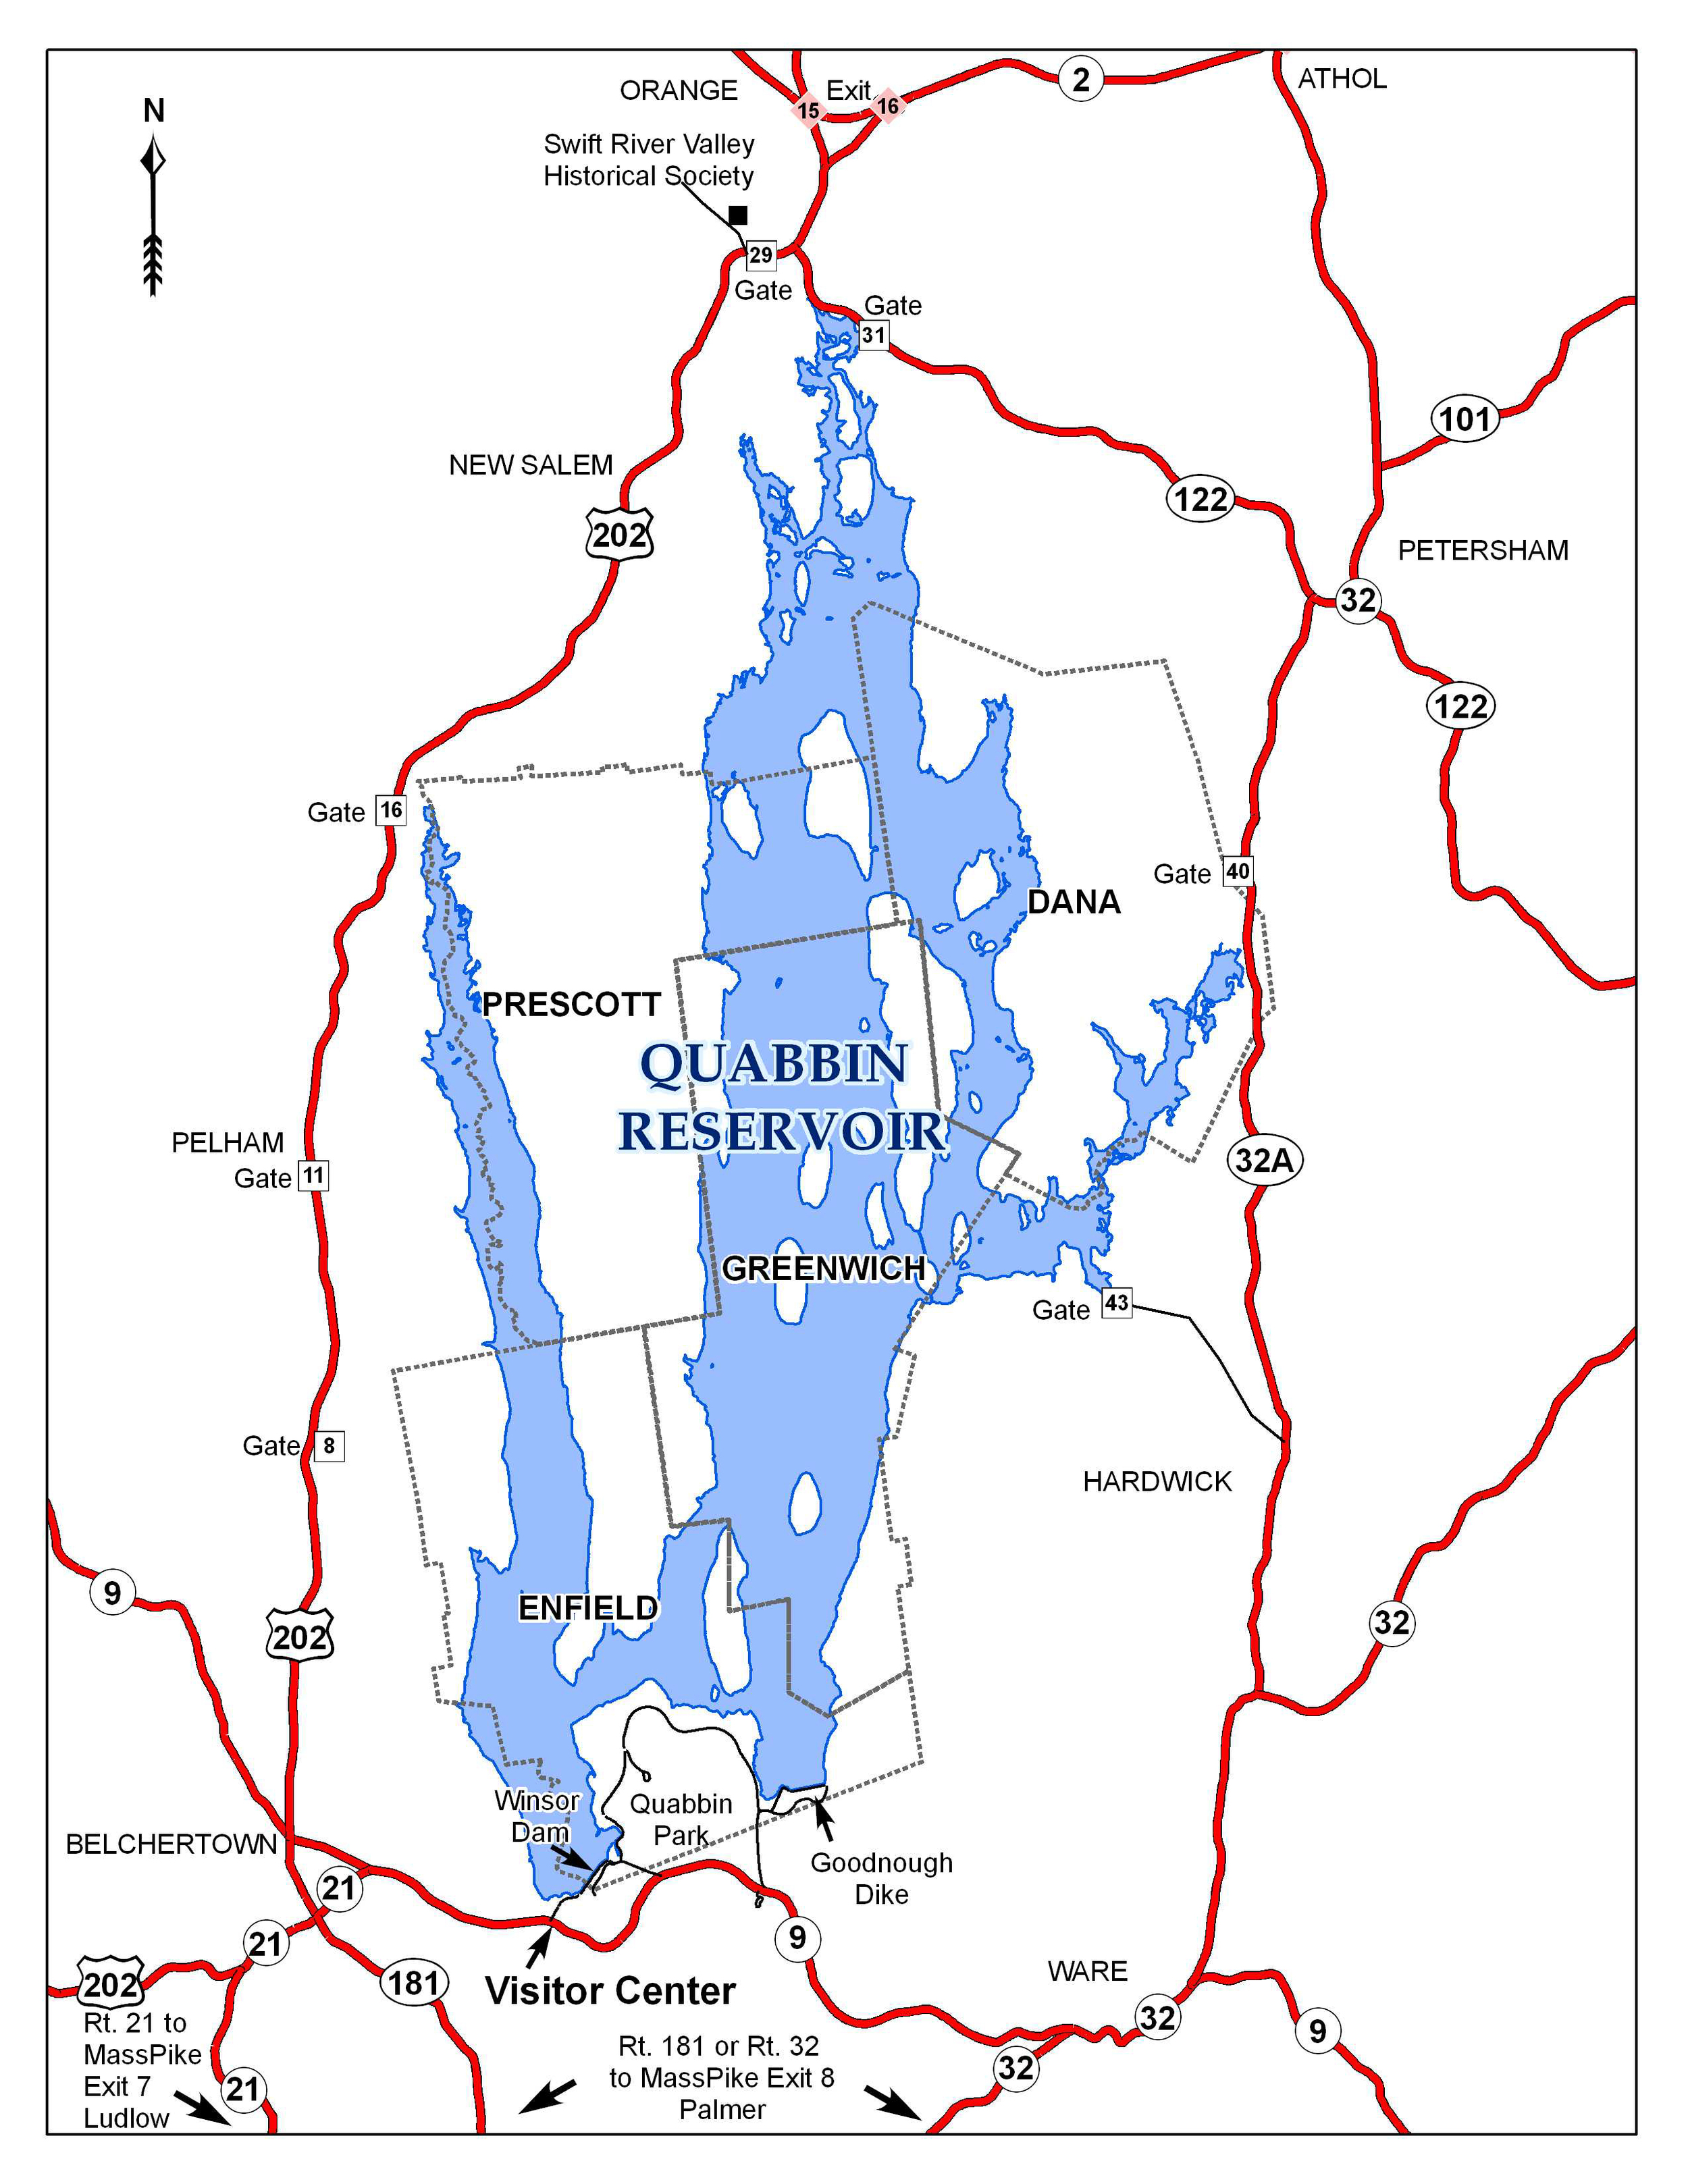 Call the Quabbin Visitor Center at 413-323-7221 for more info about the Quabbin, including rules. Copy and past the following URLto your browser to viewa short film about Quabbin I was involved in when I worked as aninterpreter there at the Visitor Center.   https://www.youtube.com/watch?v=CE4Q5LOK2ec